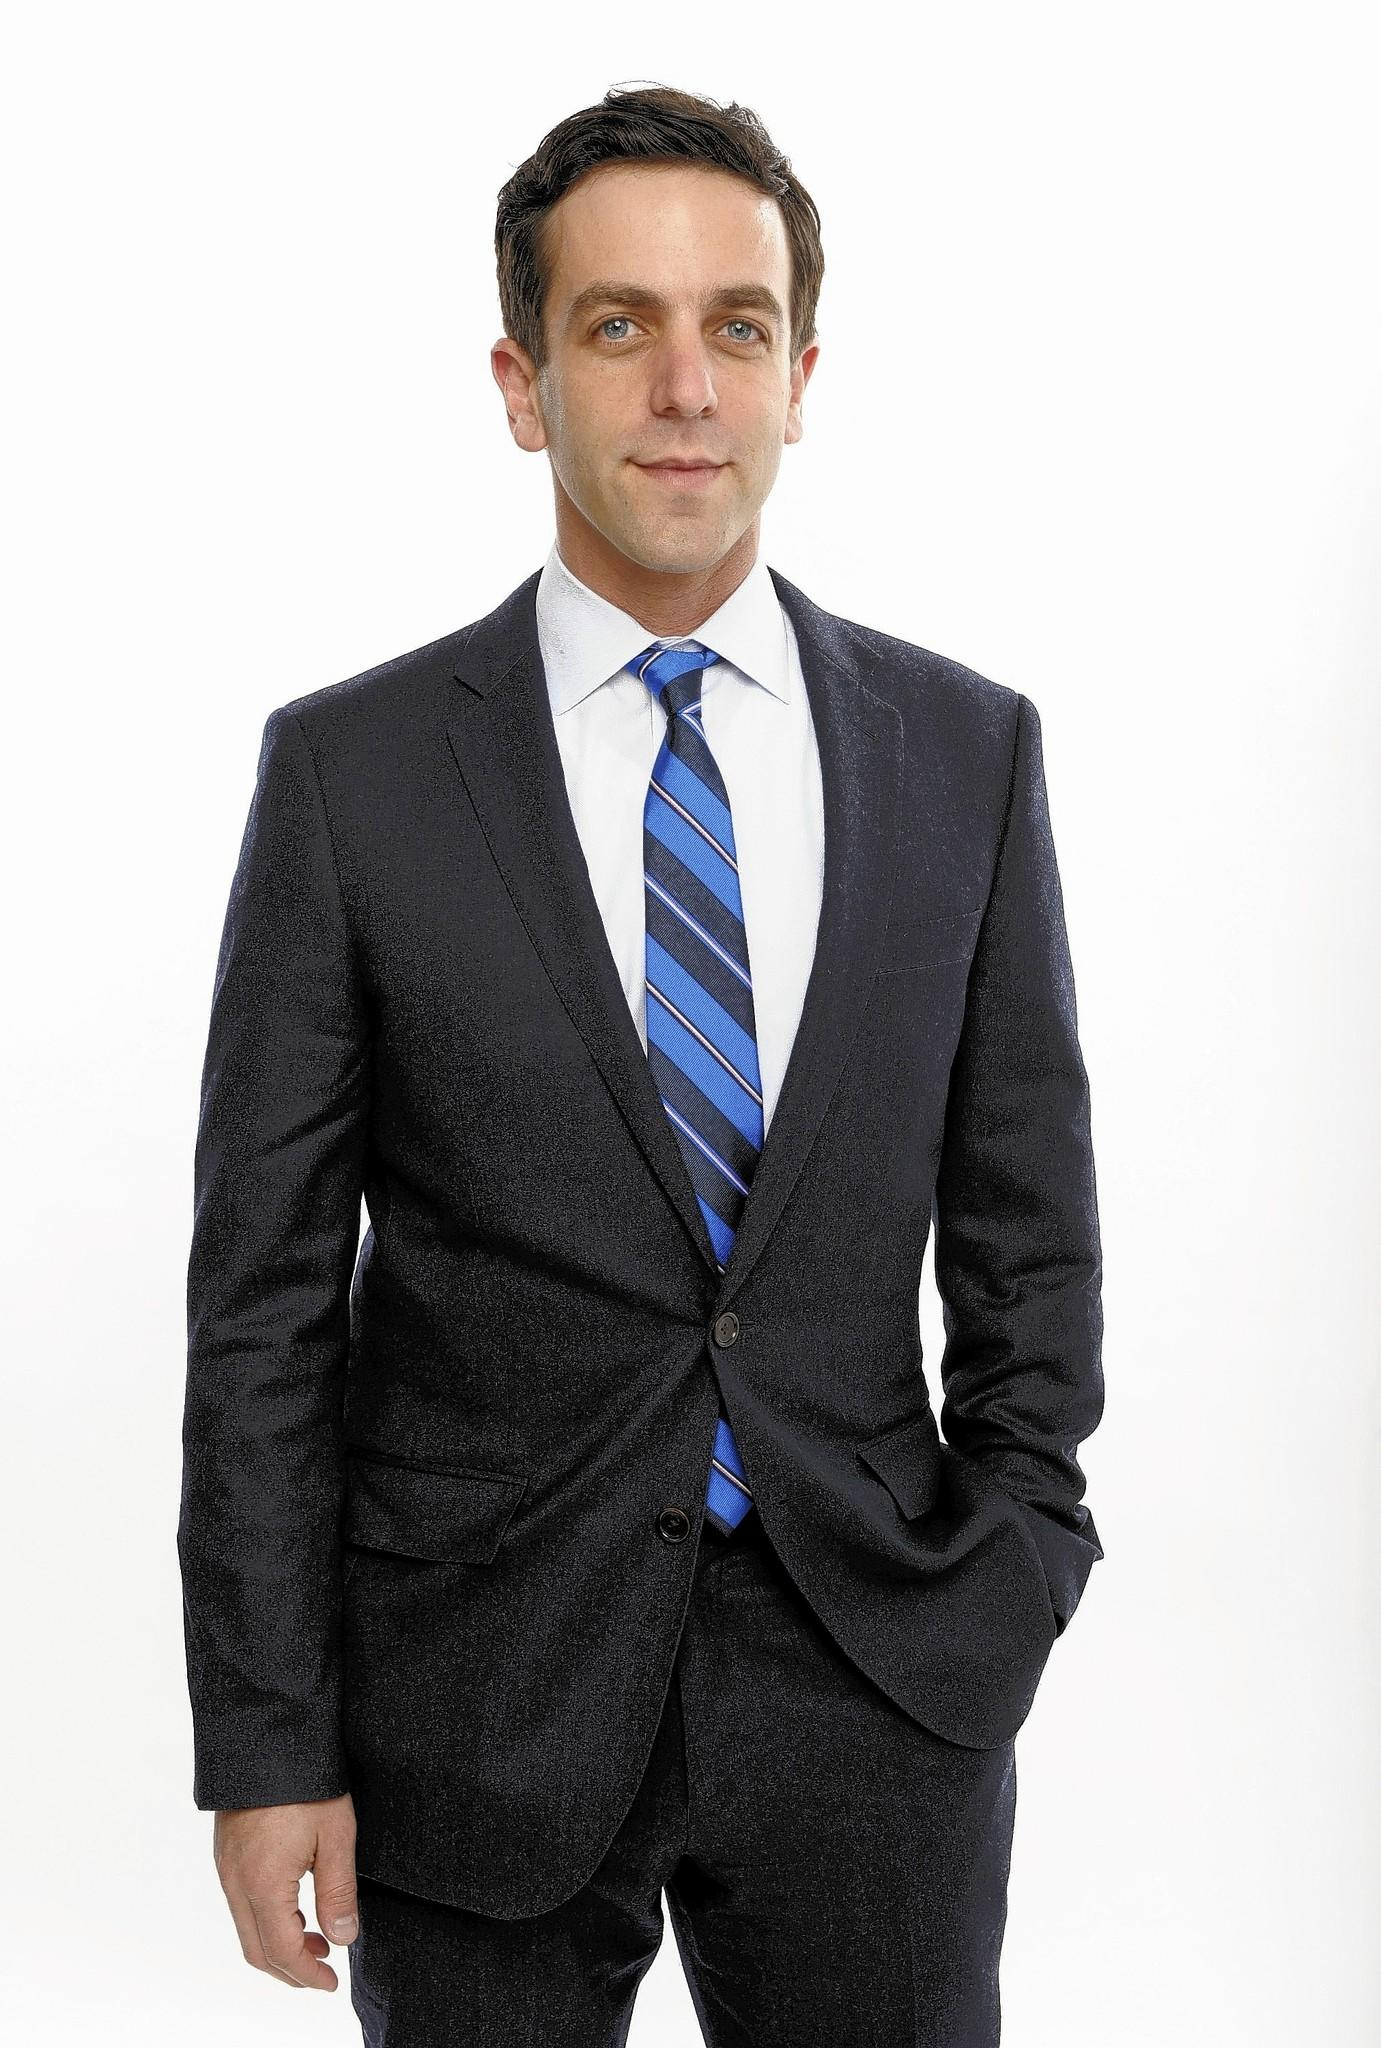 """""""One More Thing,"""" a collection of short stories, is B.J. Novak's first literary work. He is best known for writing and acting on """"The Office."""""""